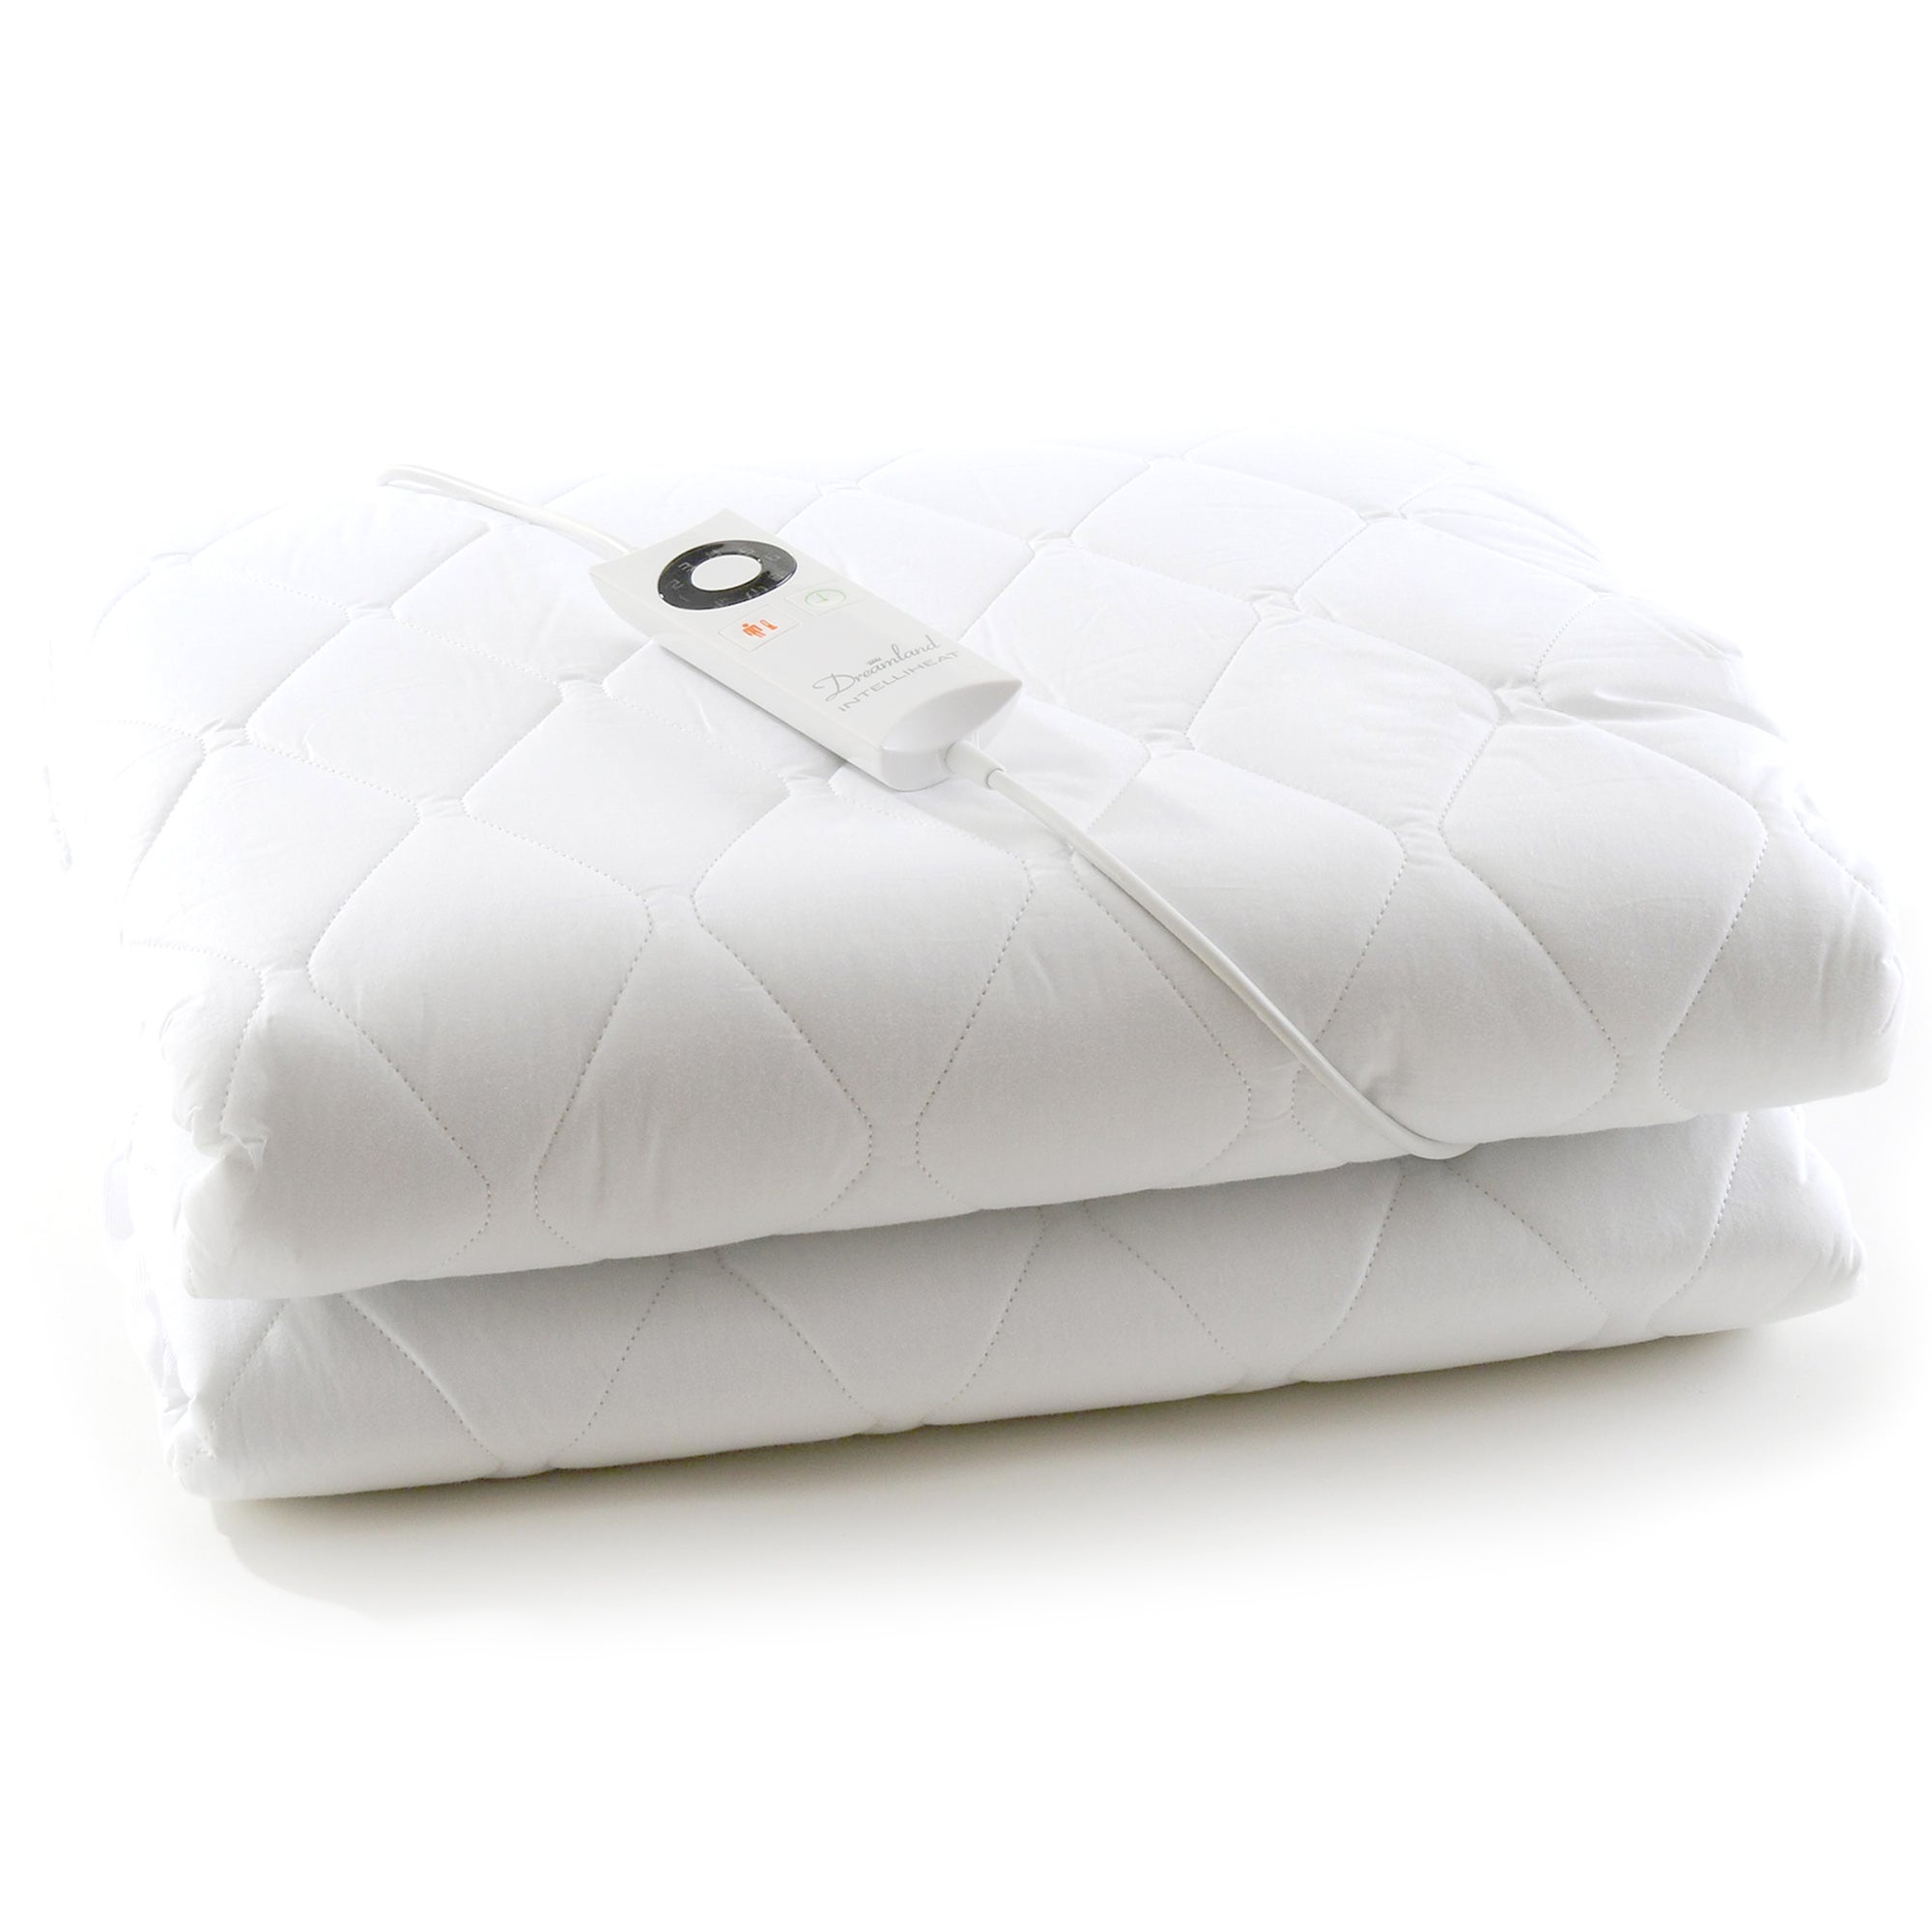 Dreamland Sleepwell Double Mattress Cover